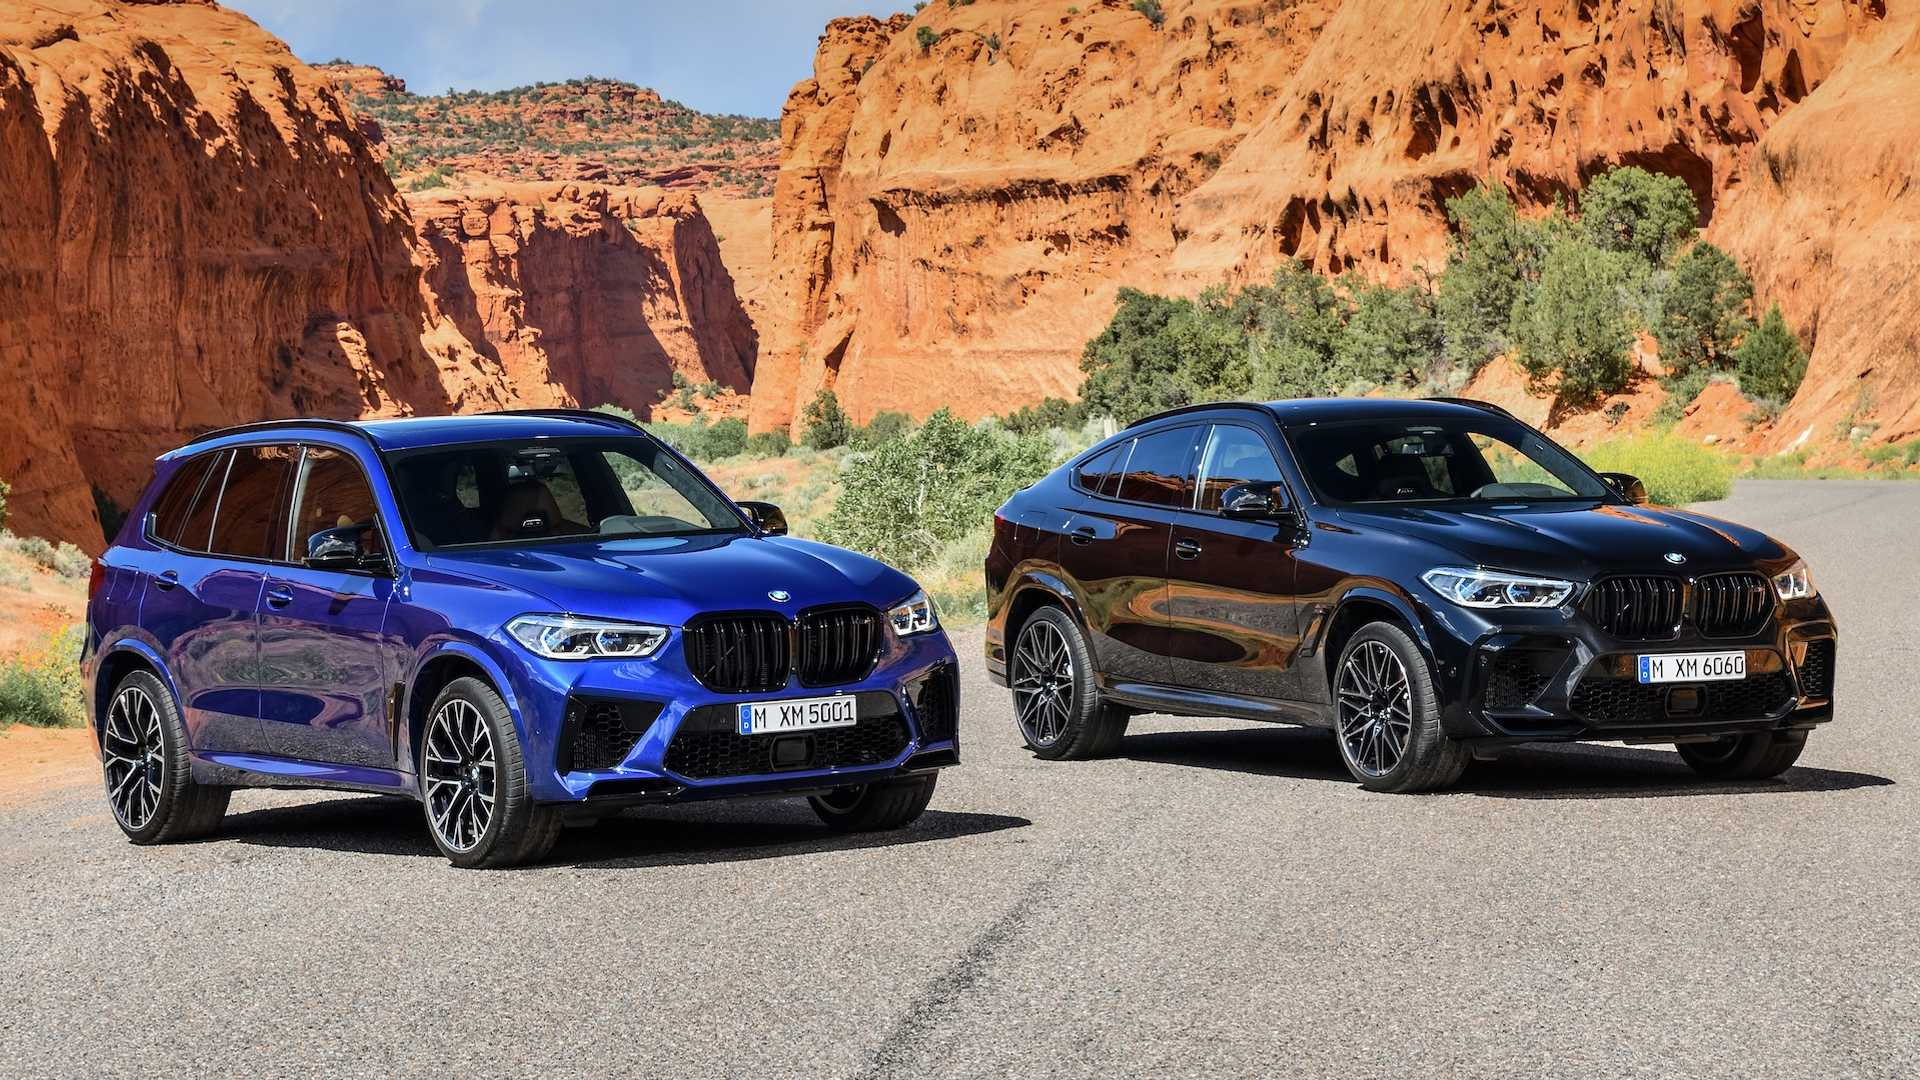 2020-bmw-x5-m-competition-1